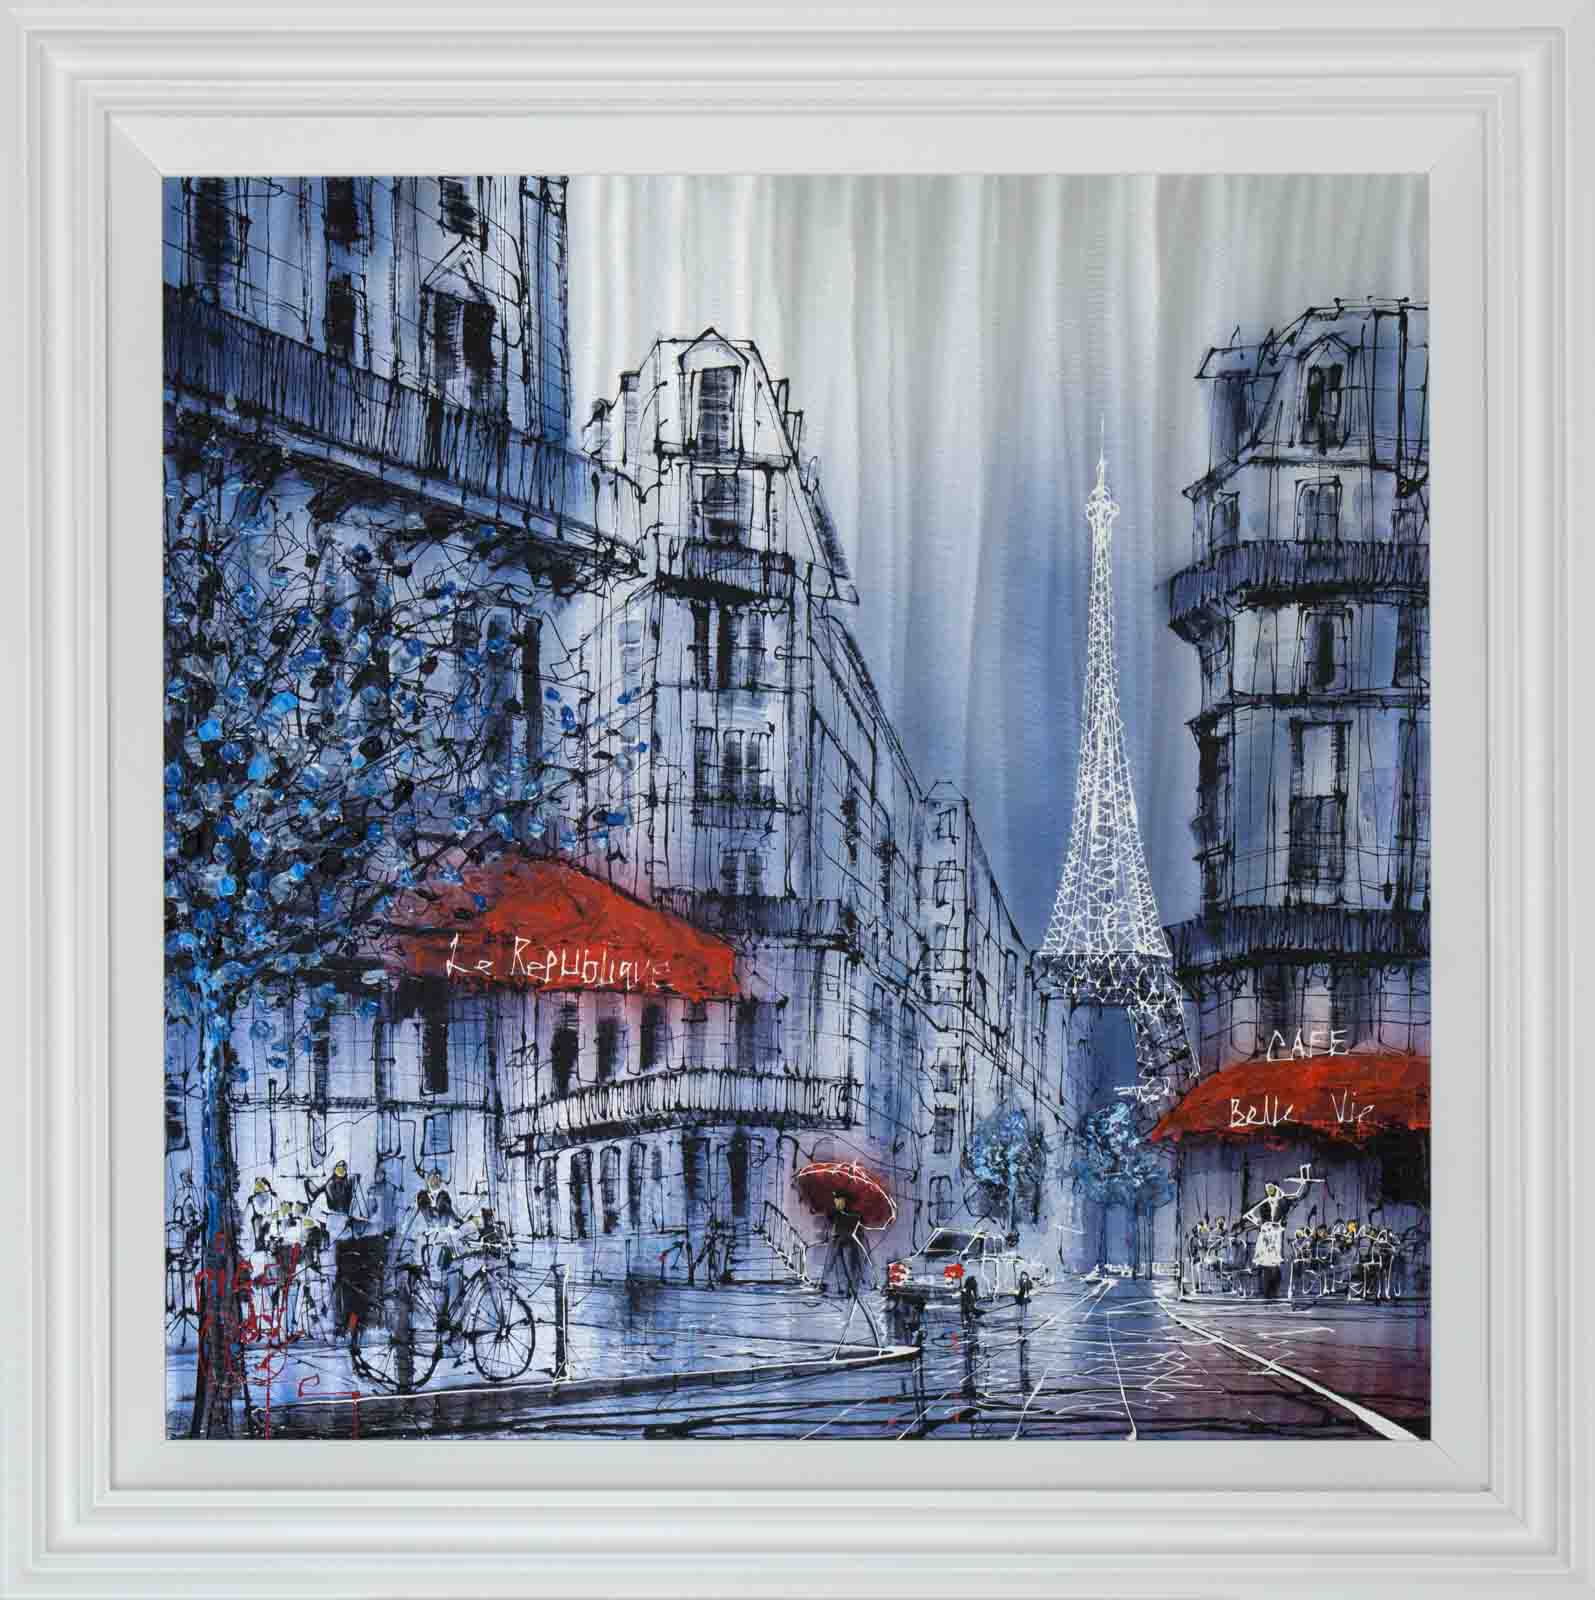 Reflections of Paris, Nigel Cooke